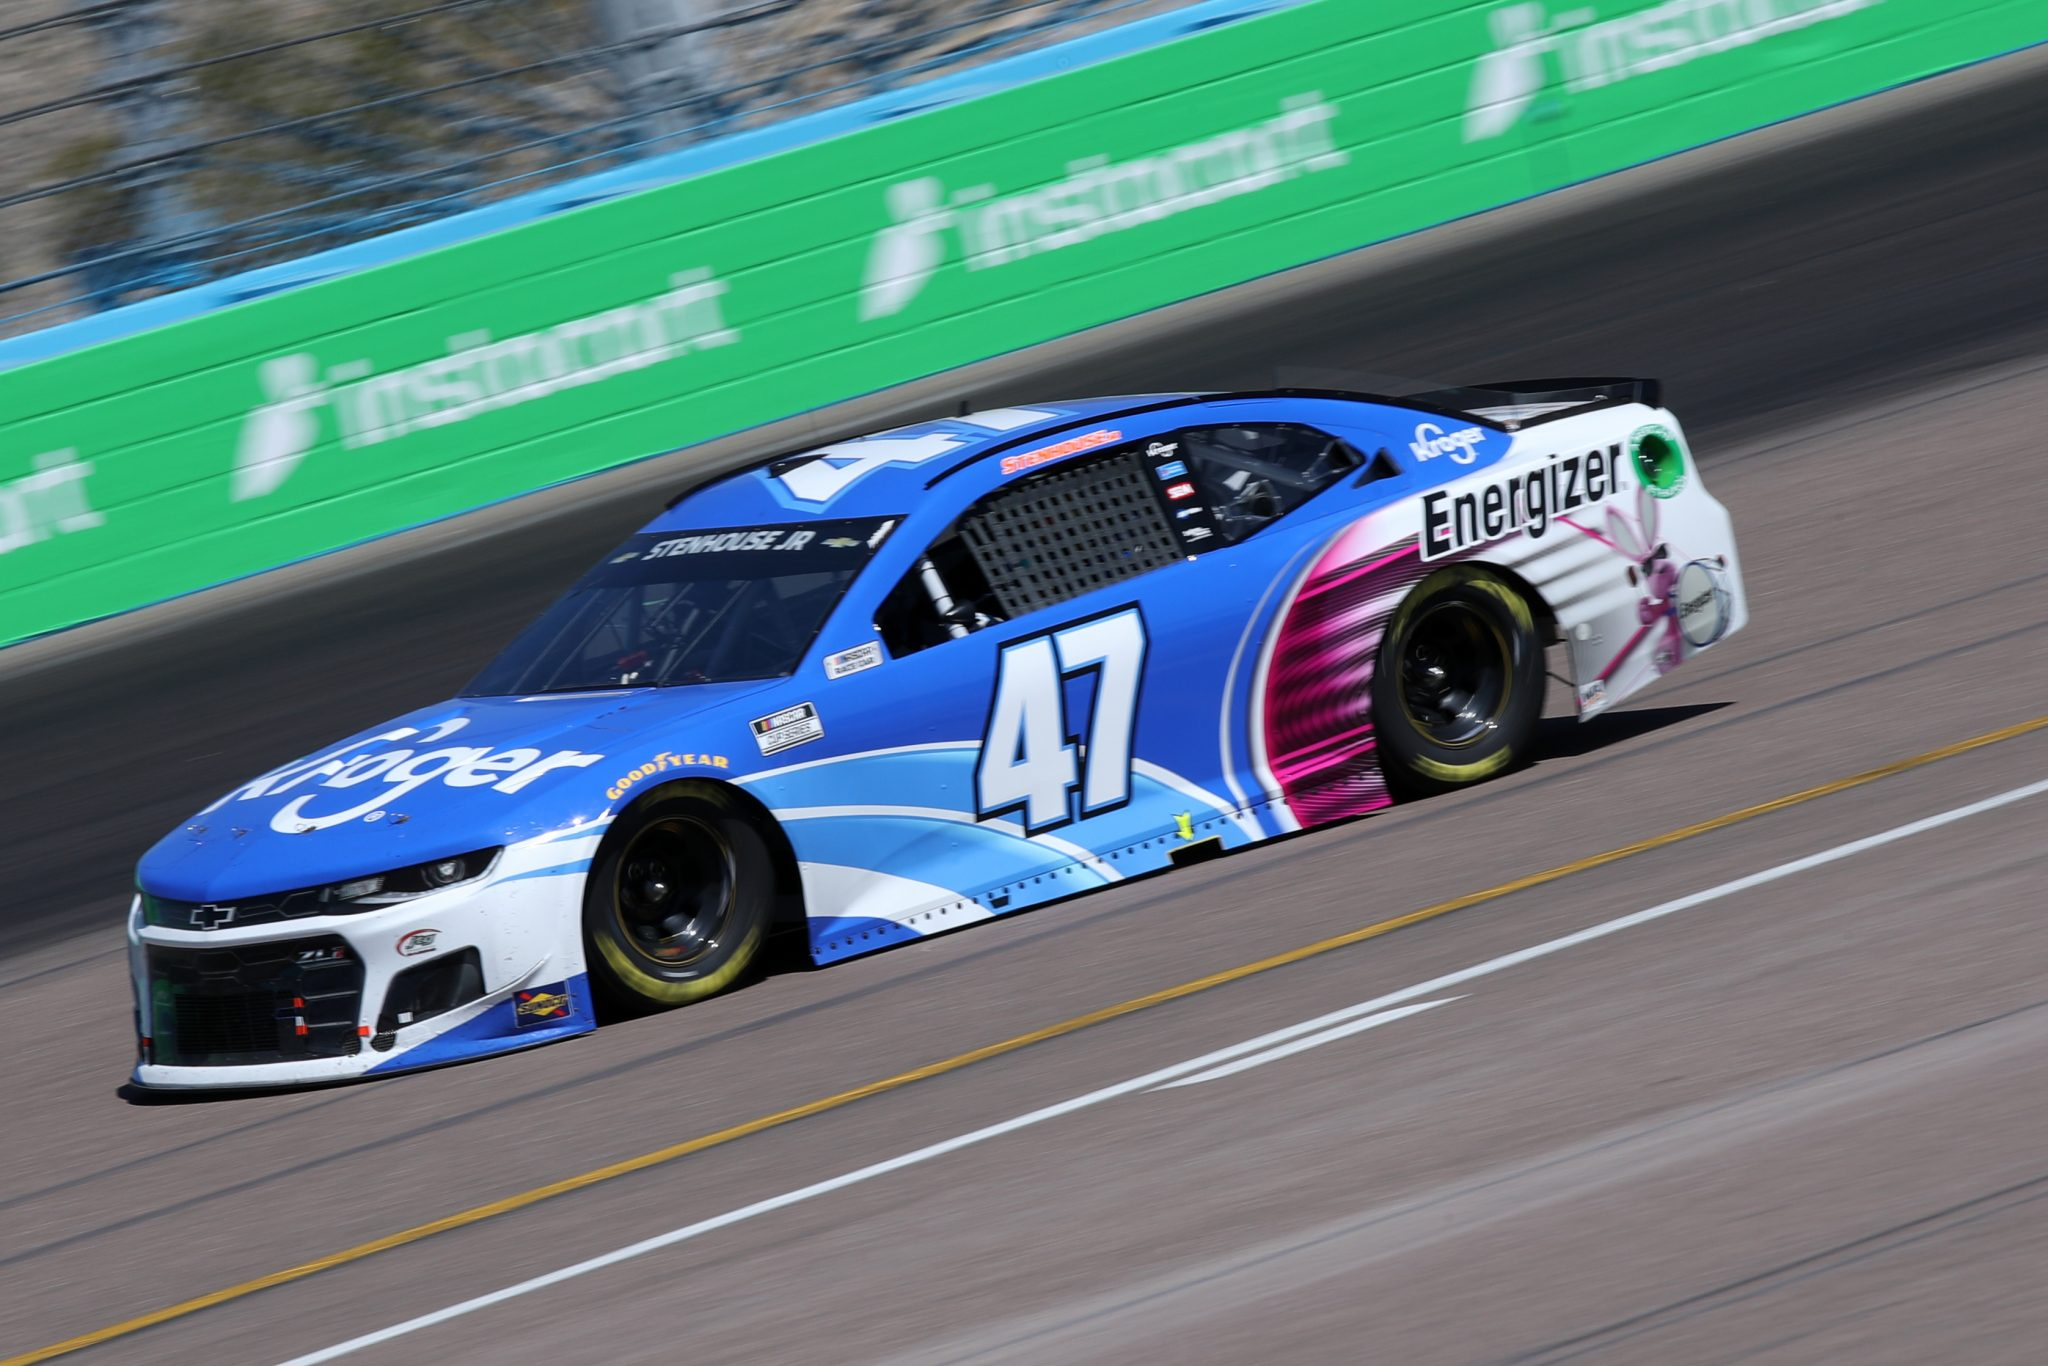 AVONDALE, ARIZONA - MARCH 14: Ricky Stenhouse Jr., driver of the #47 Kroger/Energizer Chevrolet, drives during the NASCAR Cup Series Instacart 500 at Phoenix Raceway on March 14, 2021 in Avondale, Arizona. (Photo by Sean Gardner/Getty Images) | Getty Images